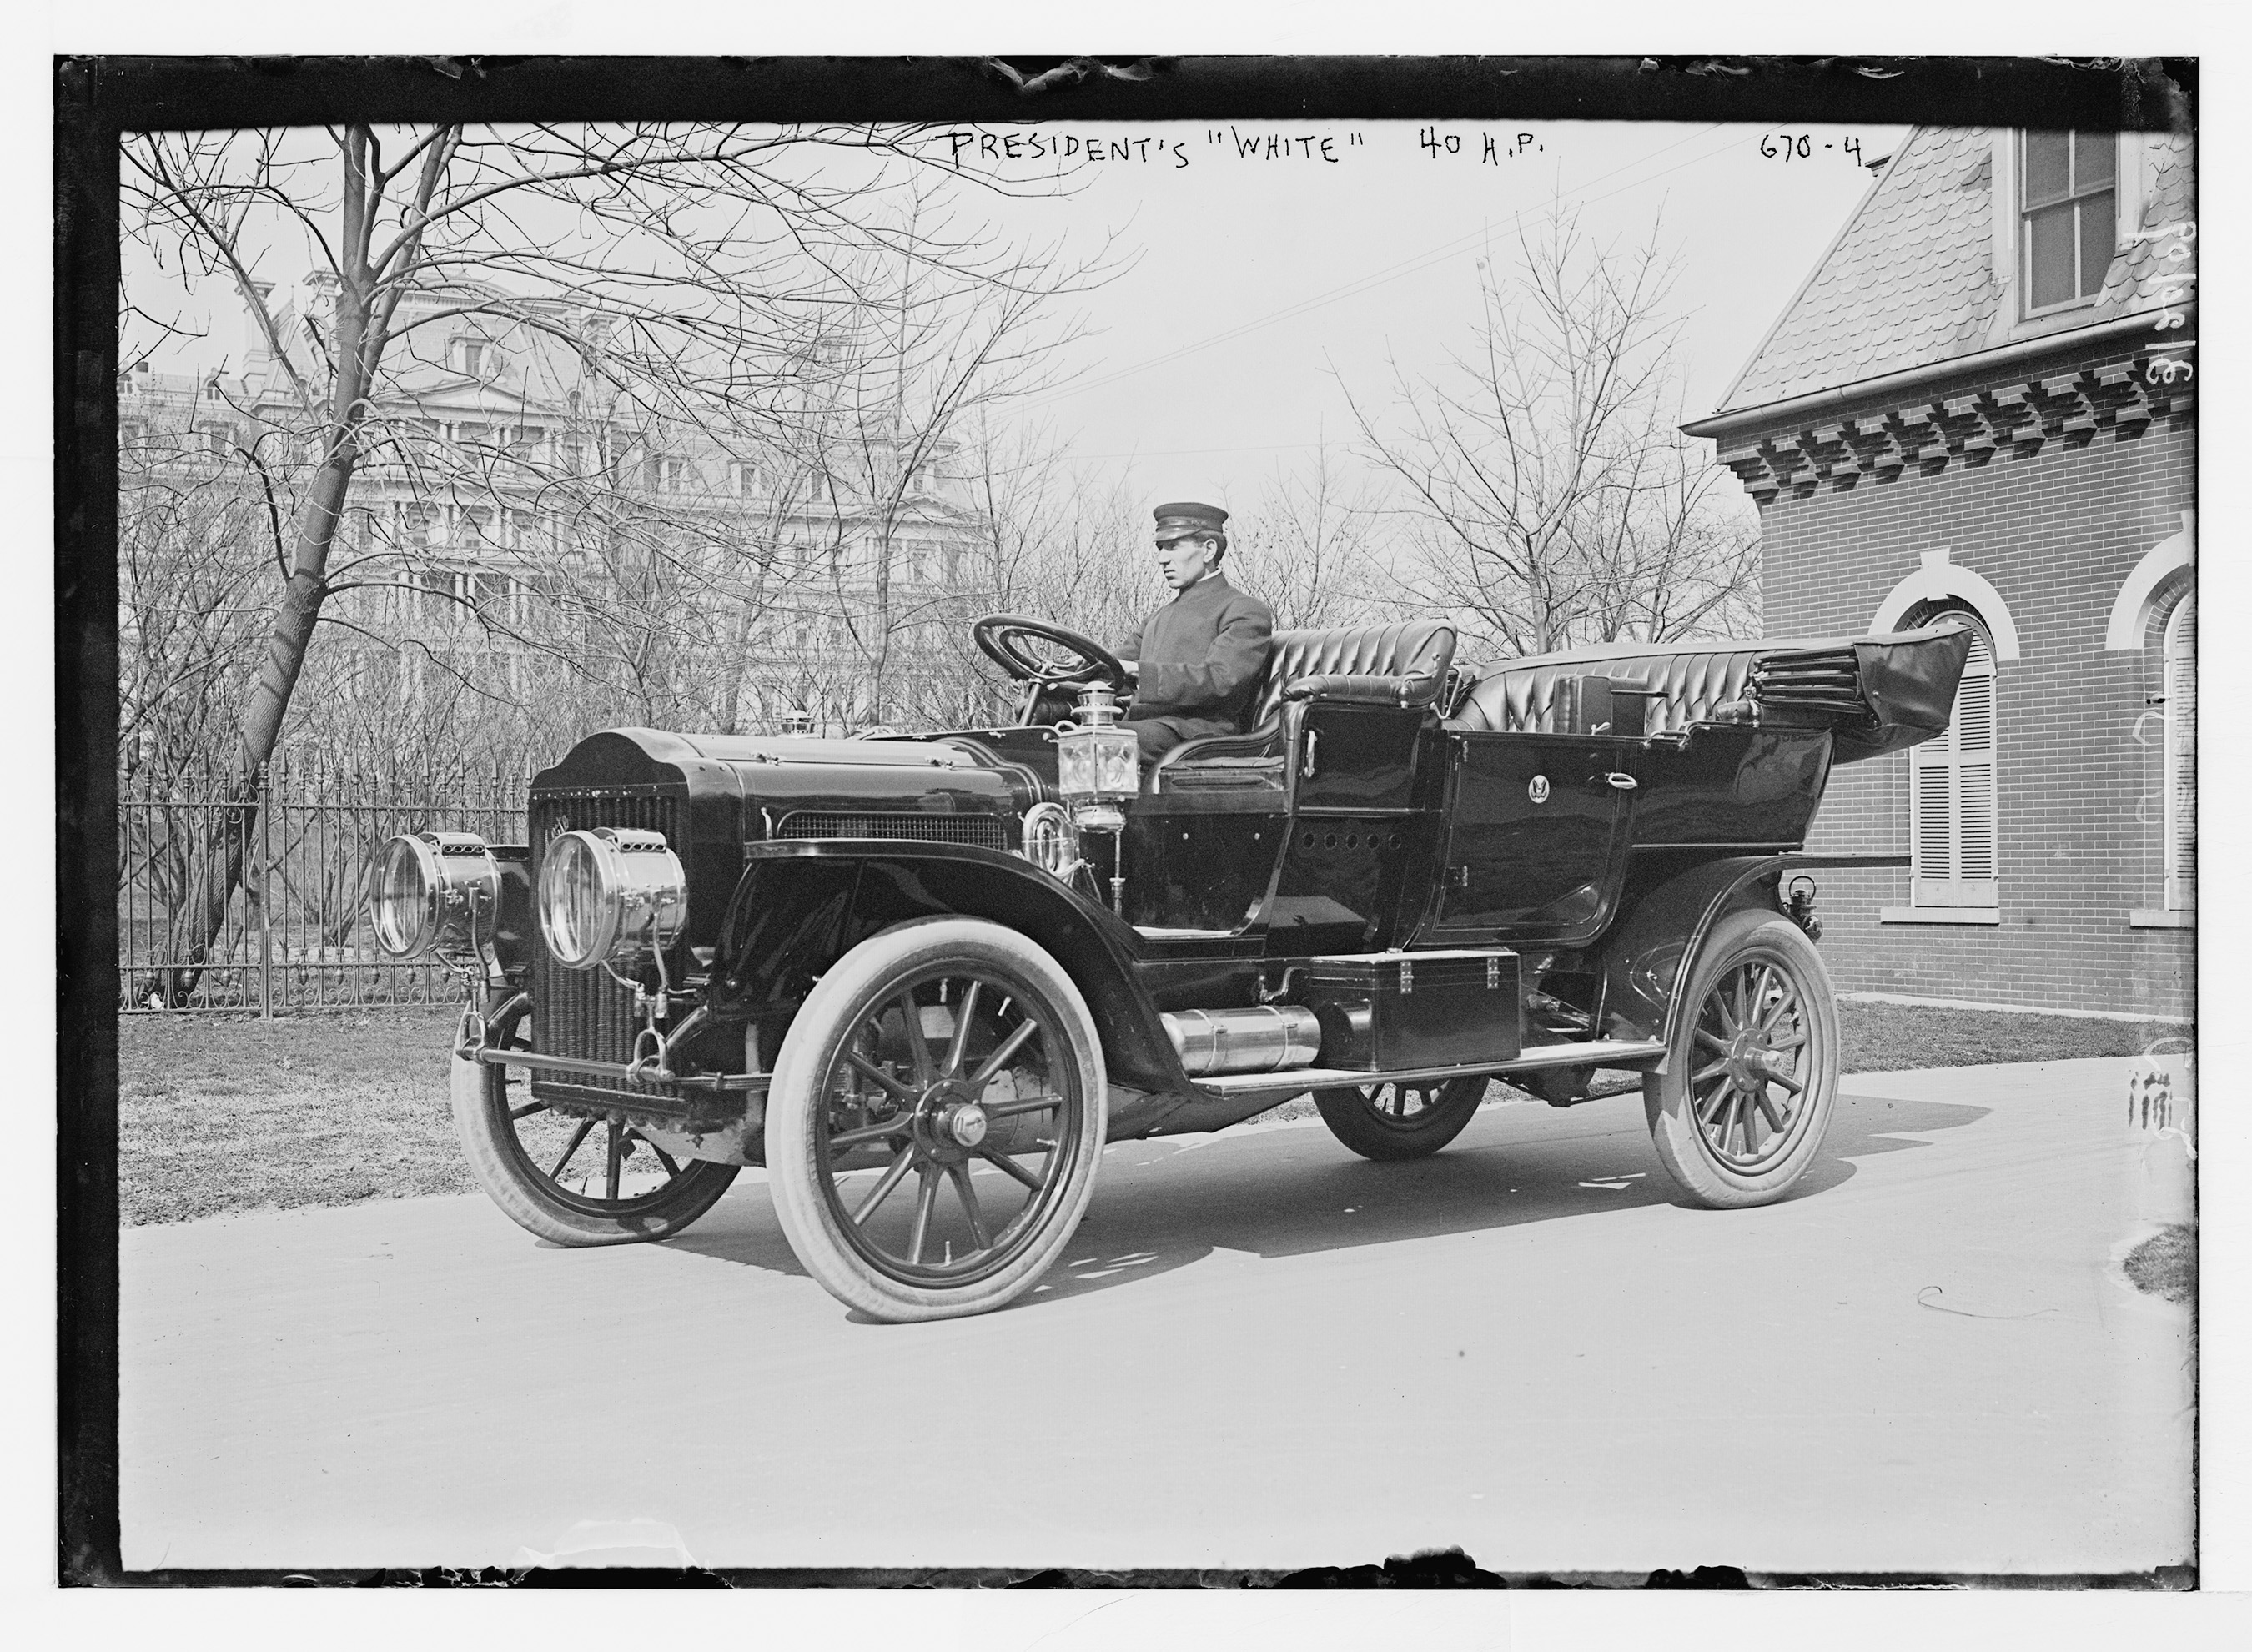 Exhibition of Presidential Cars Opens at the National Mall ...